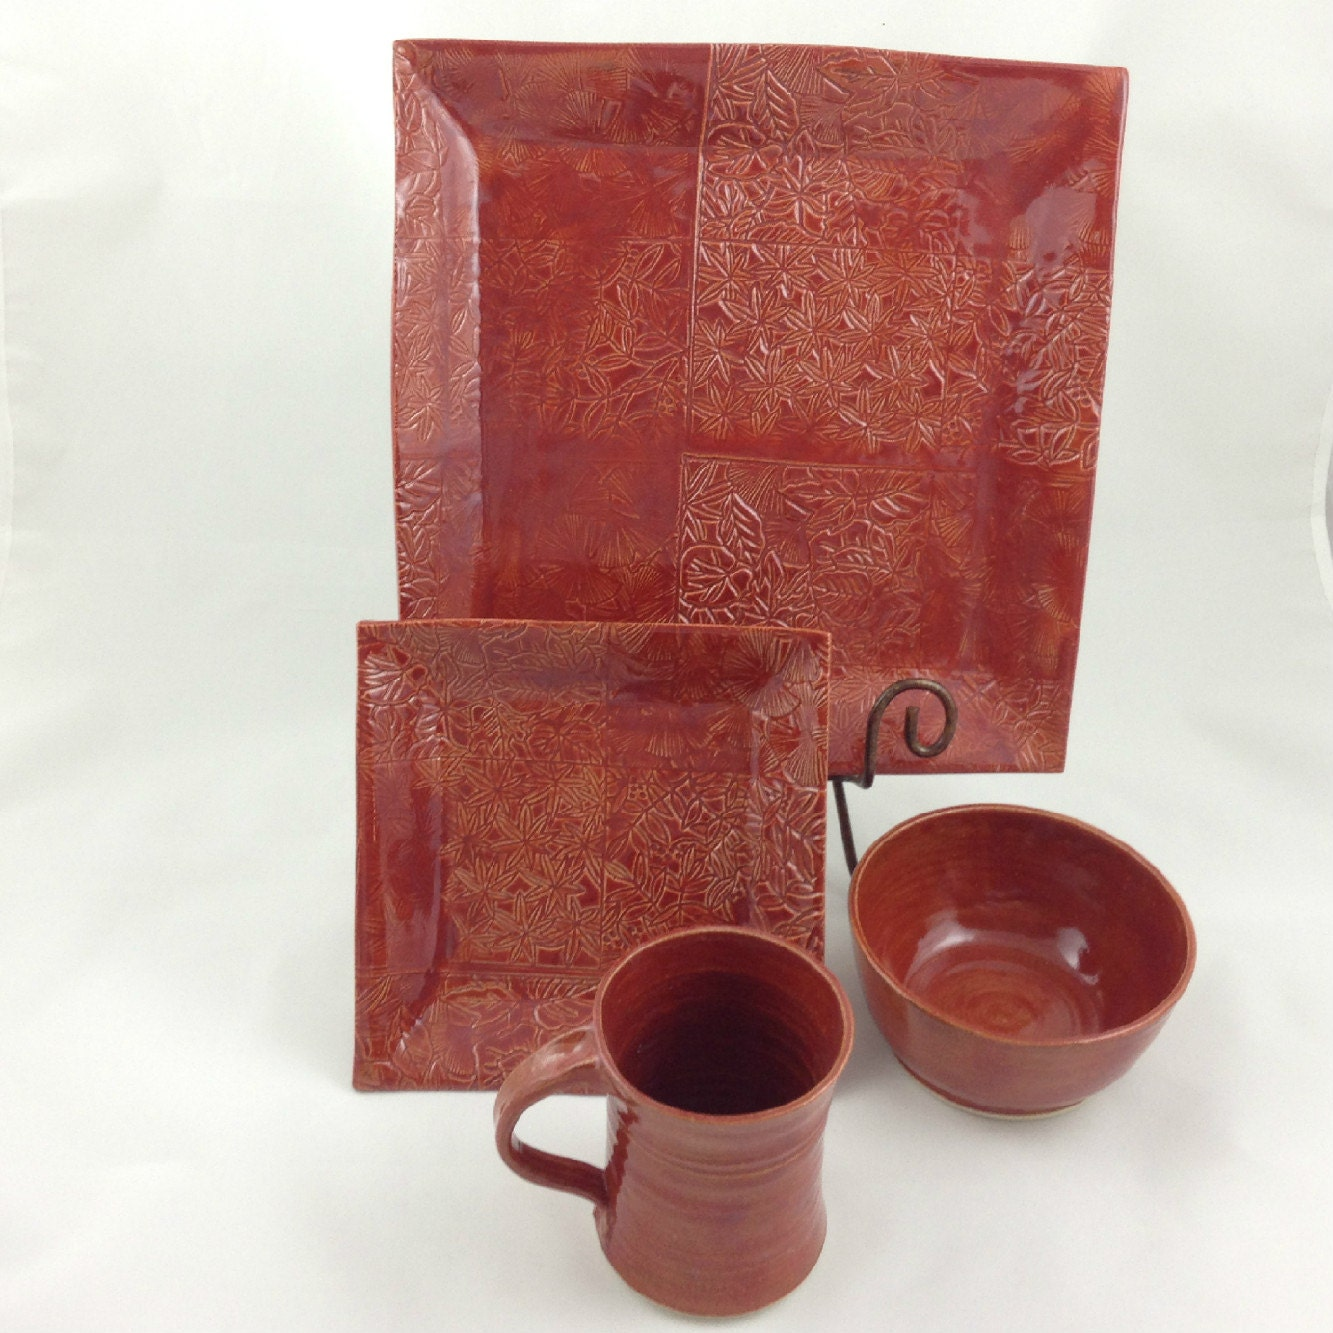 Cinnamon Red 4 Piece Place Setting Plate Bowl Mug Handmade Pottery by Daisy Friesen